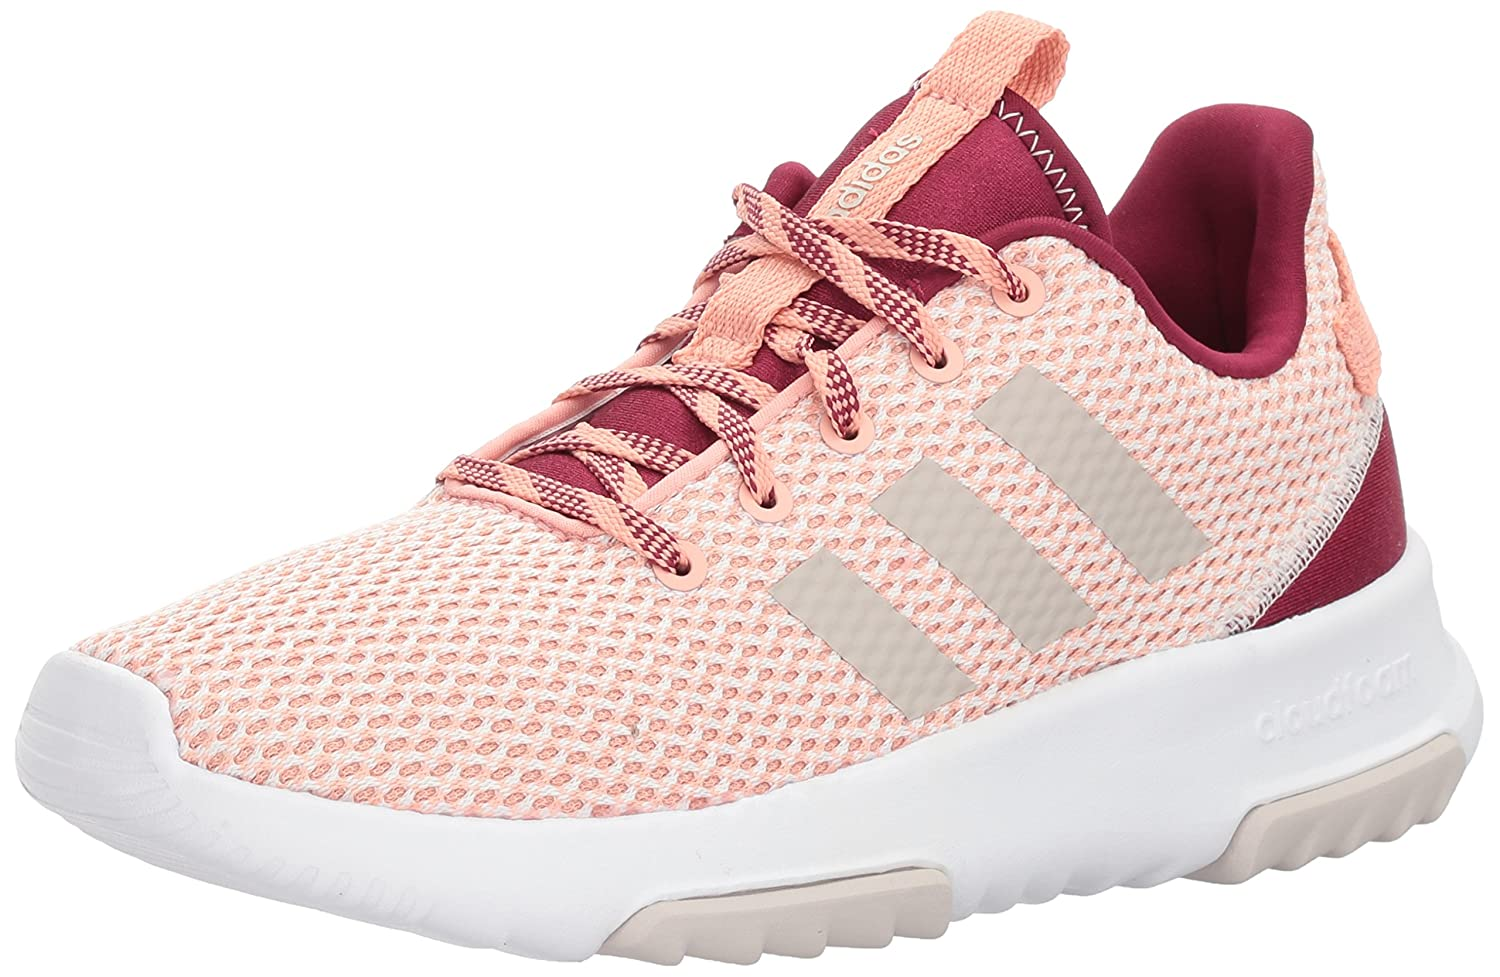 wholesale dealer dc8e4 dbd62 Amazon.com | adidas NEO Women's Cf Racer Tr W Road-Running-Shoes, Trace  Pink/Pearl Grey/Mystery Ruby, 9 Medium US | Running